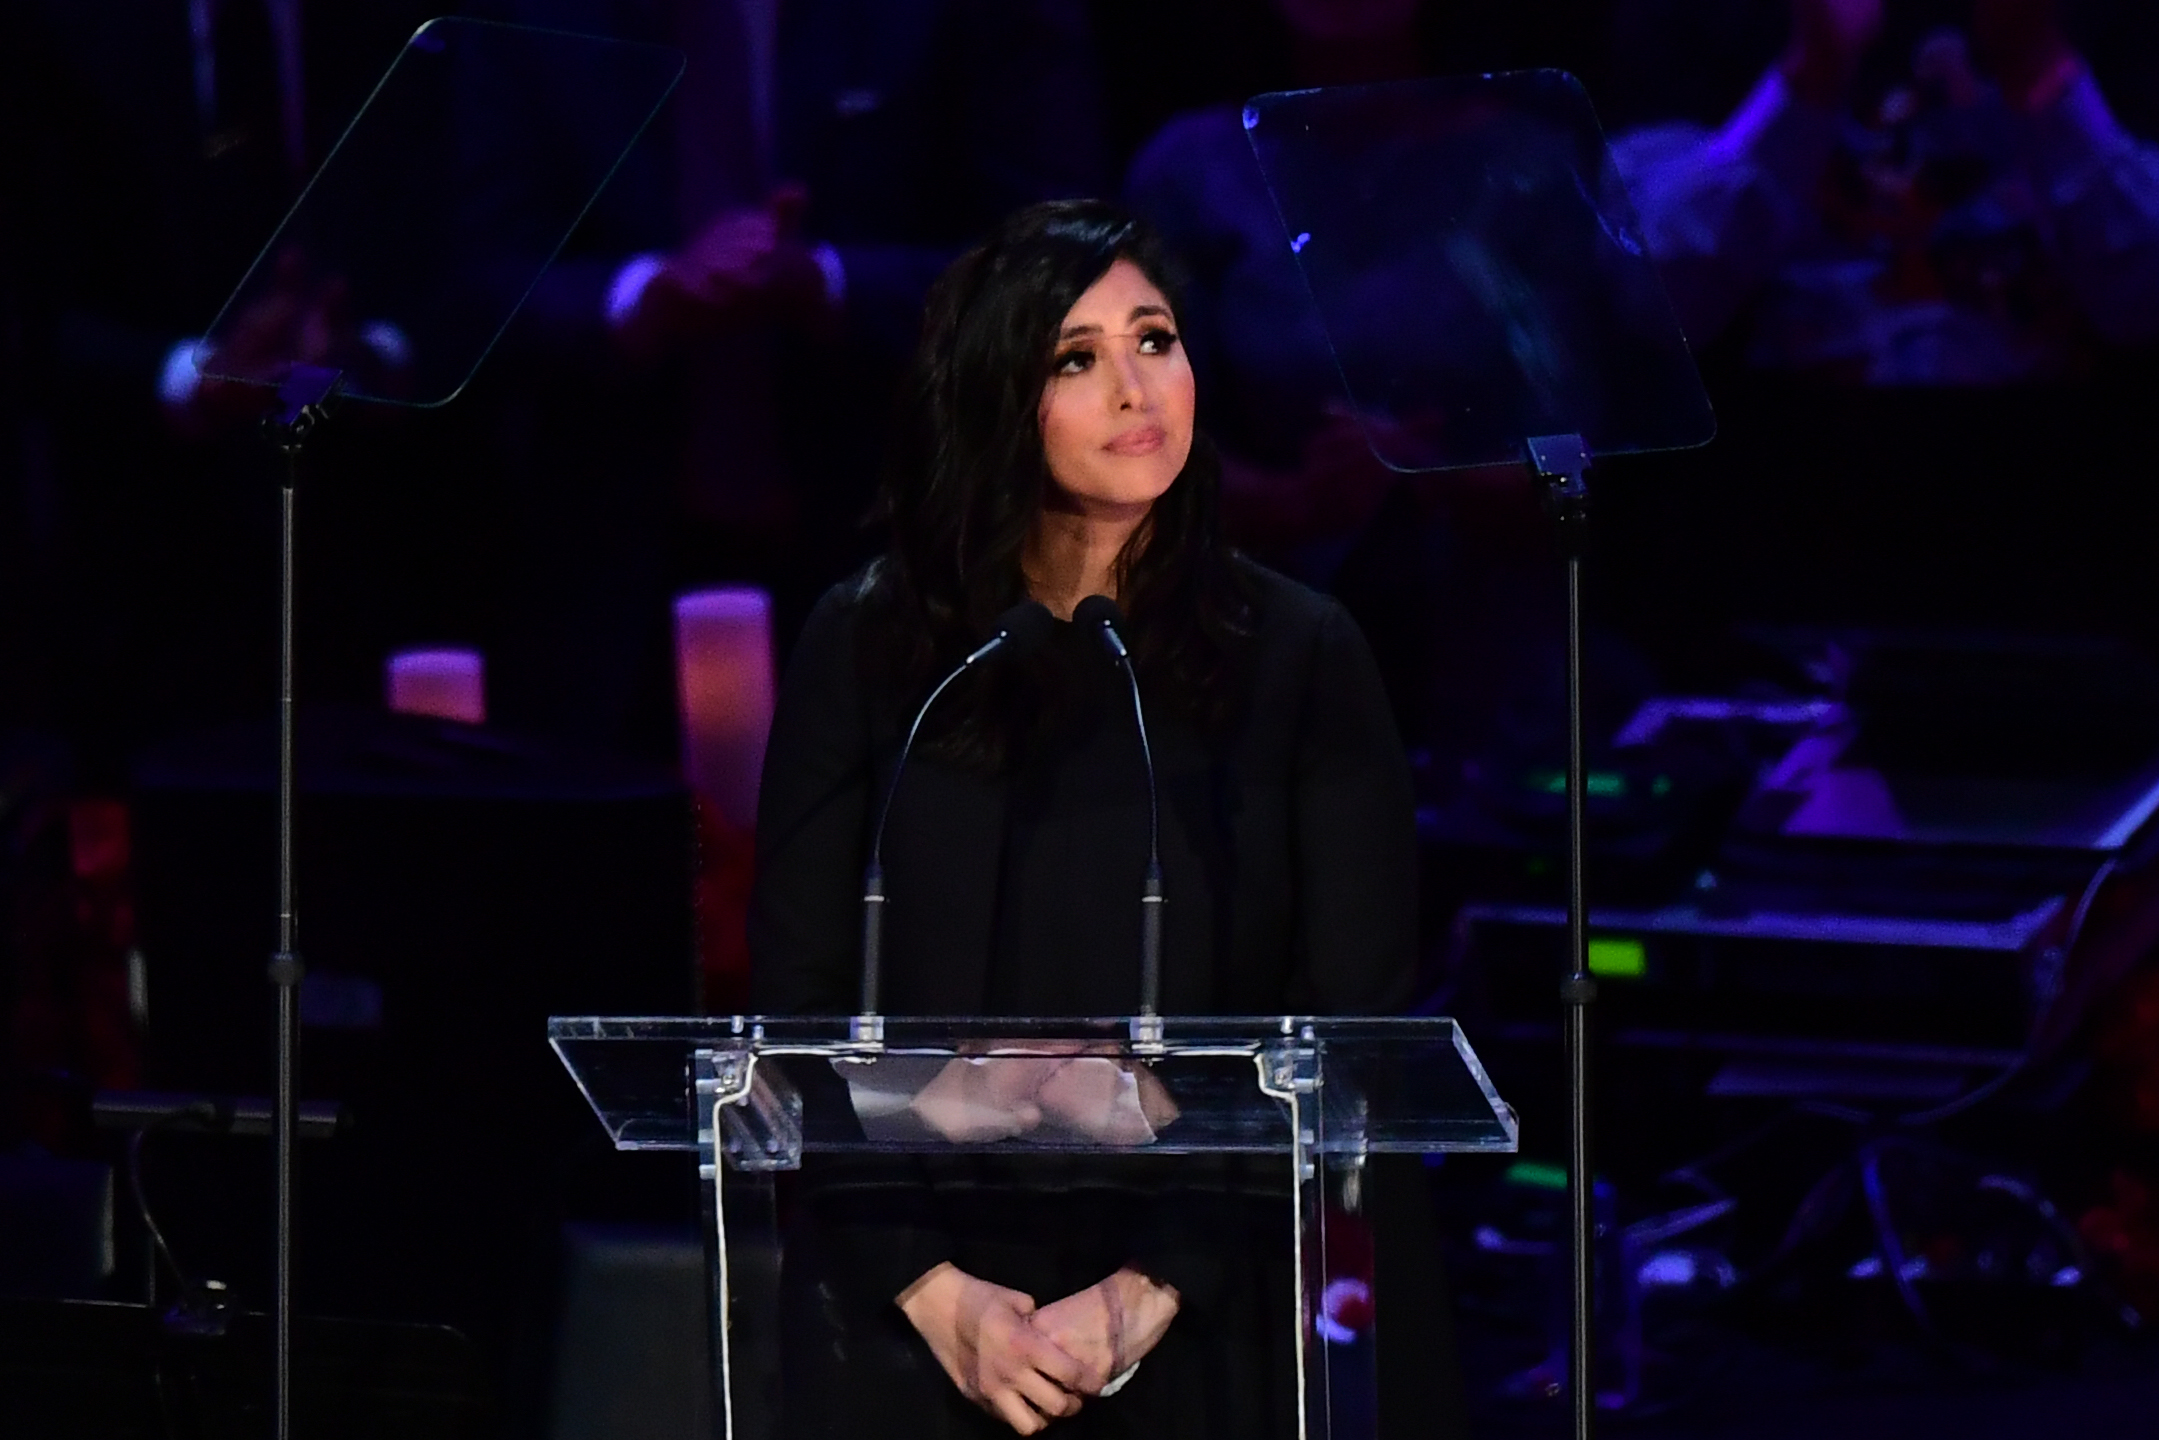 Read Vanessa Bryant S Speech At The Memorial For Kobe And Gigi Bryant Nbc Palm Springs News Weather Traffic Breaking News